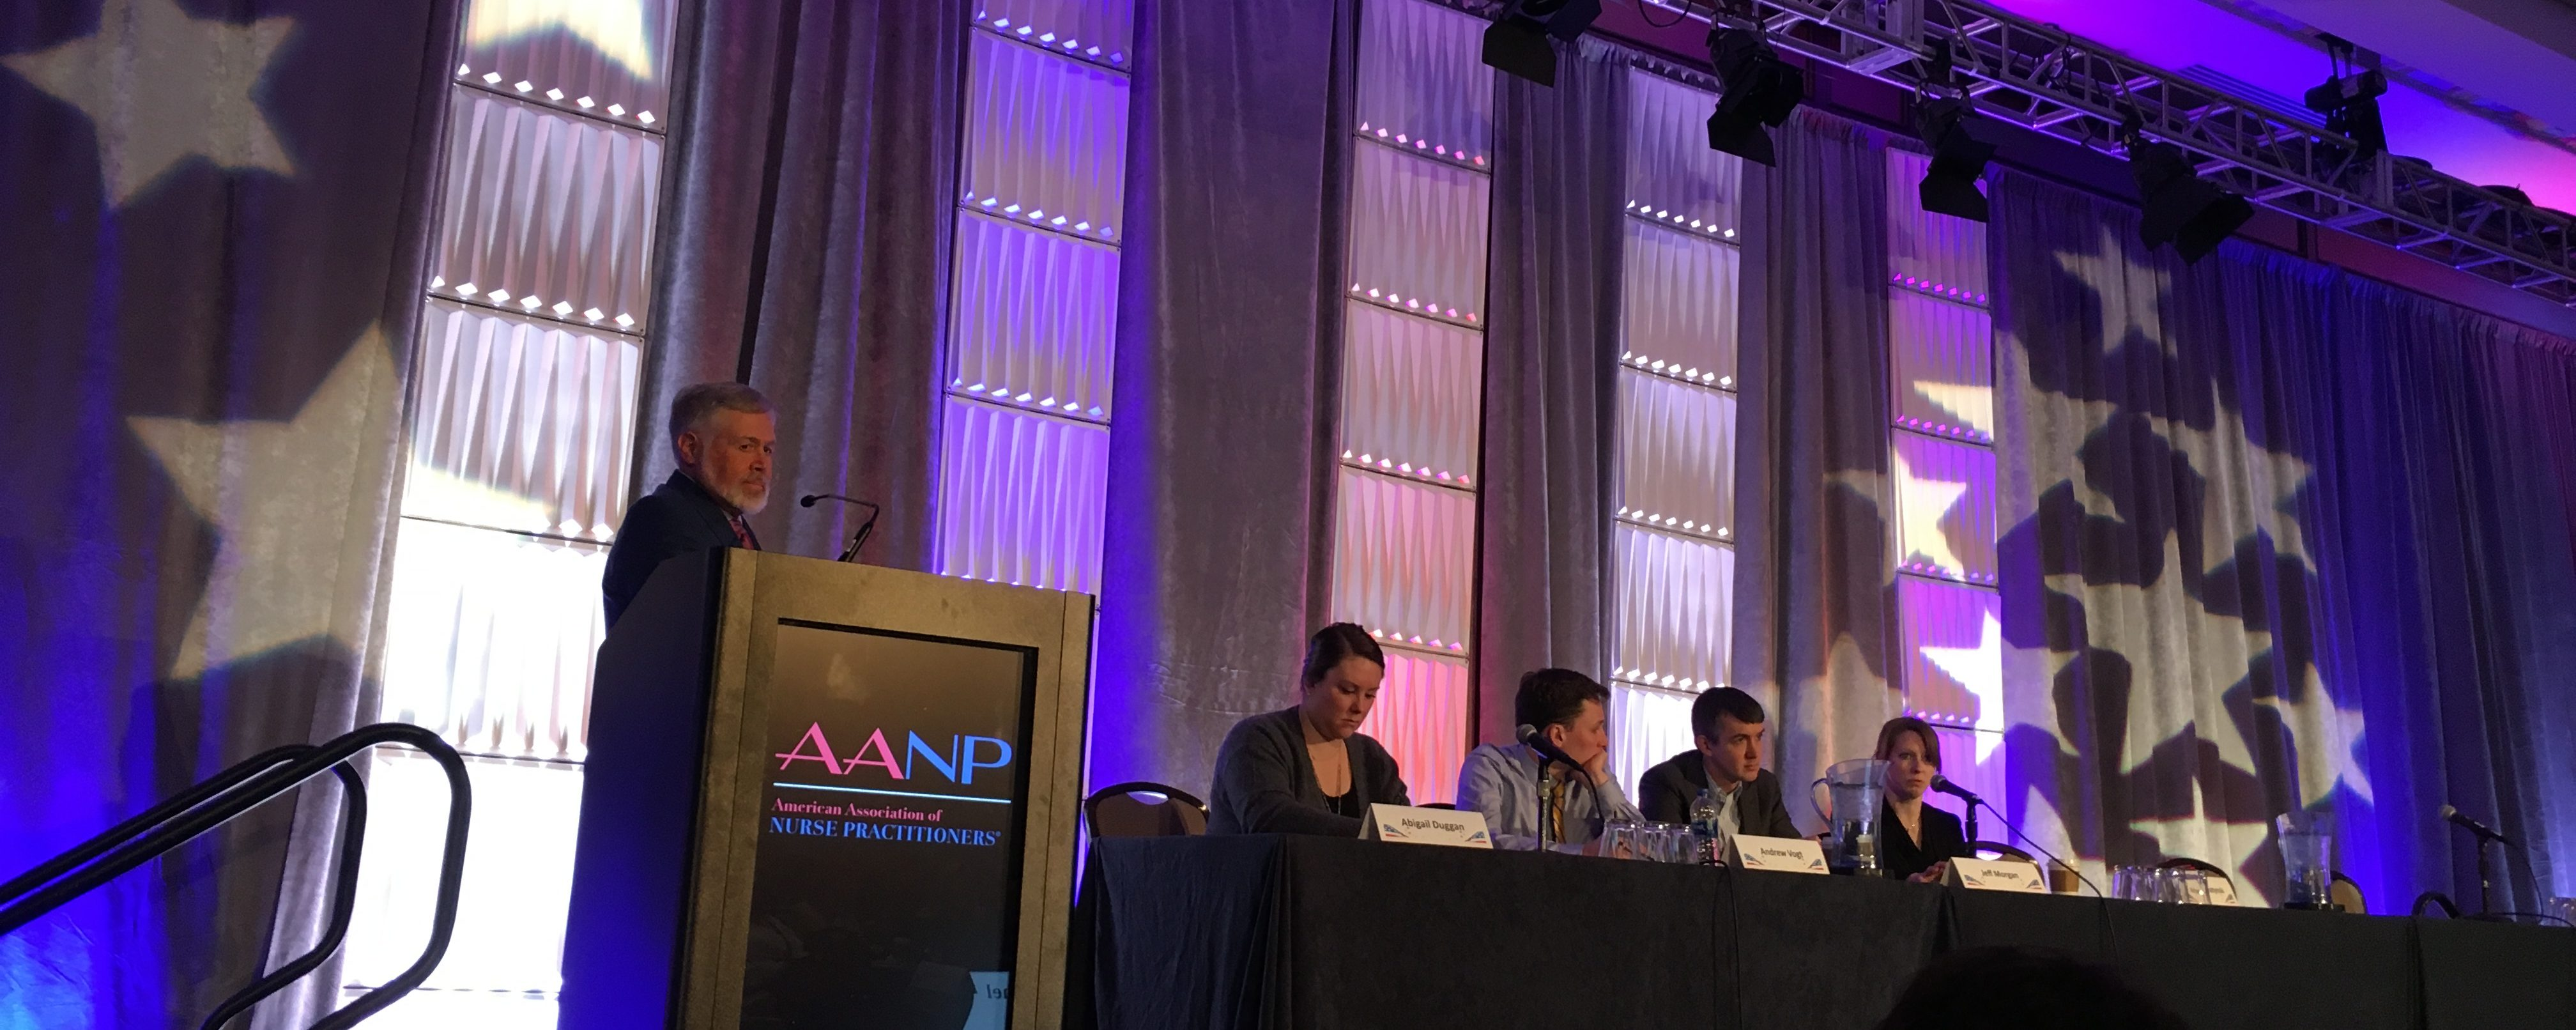 An Update from the RNS on the 2019 AANP Health Policy Conference